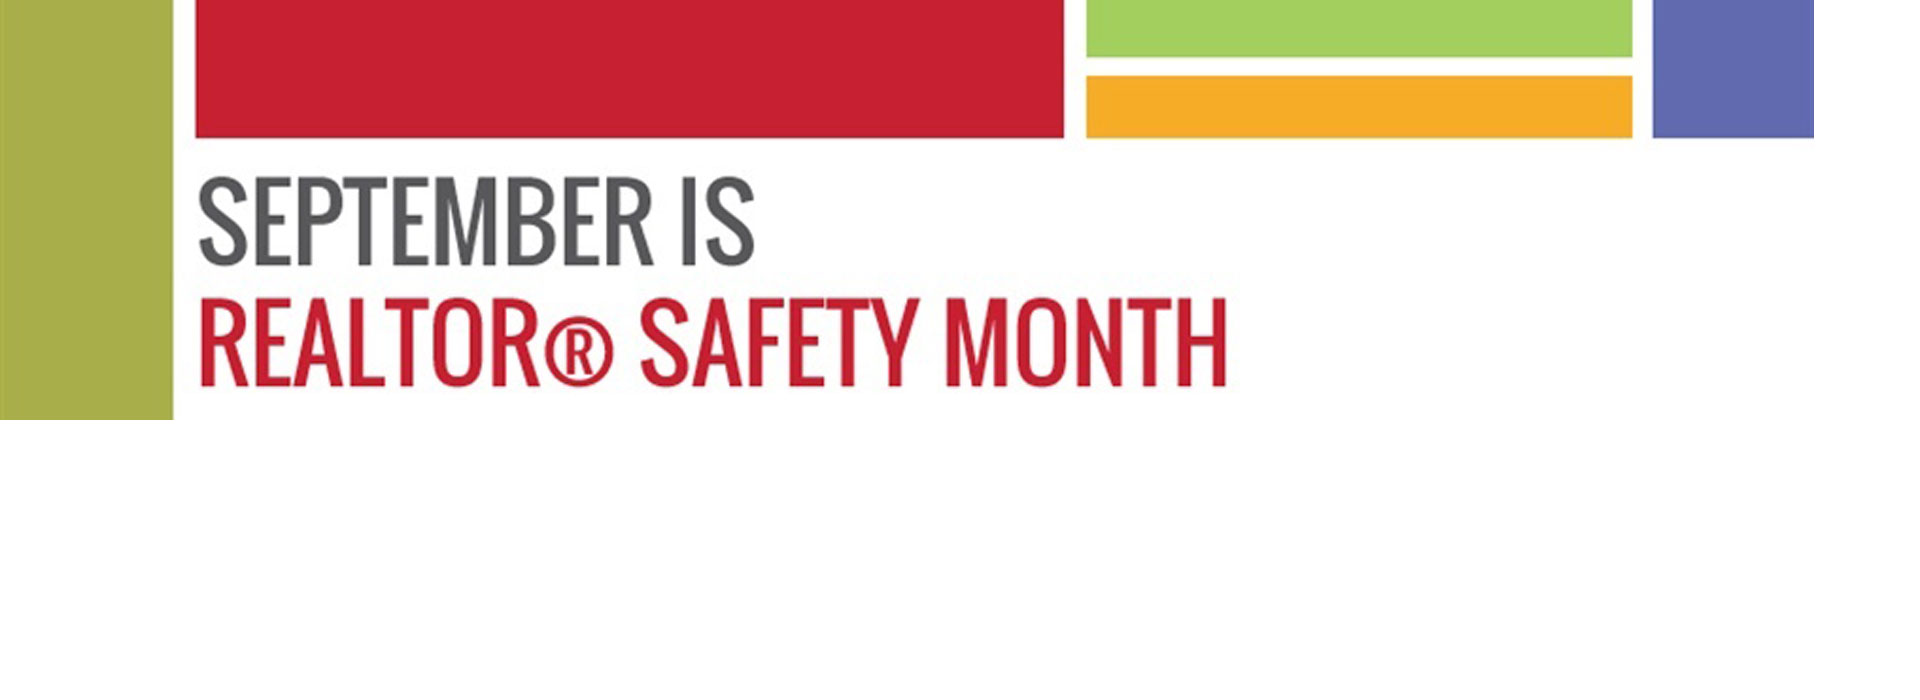 3 Safety Classes for You this Month!